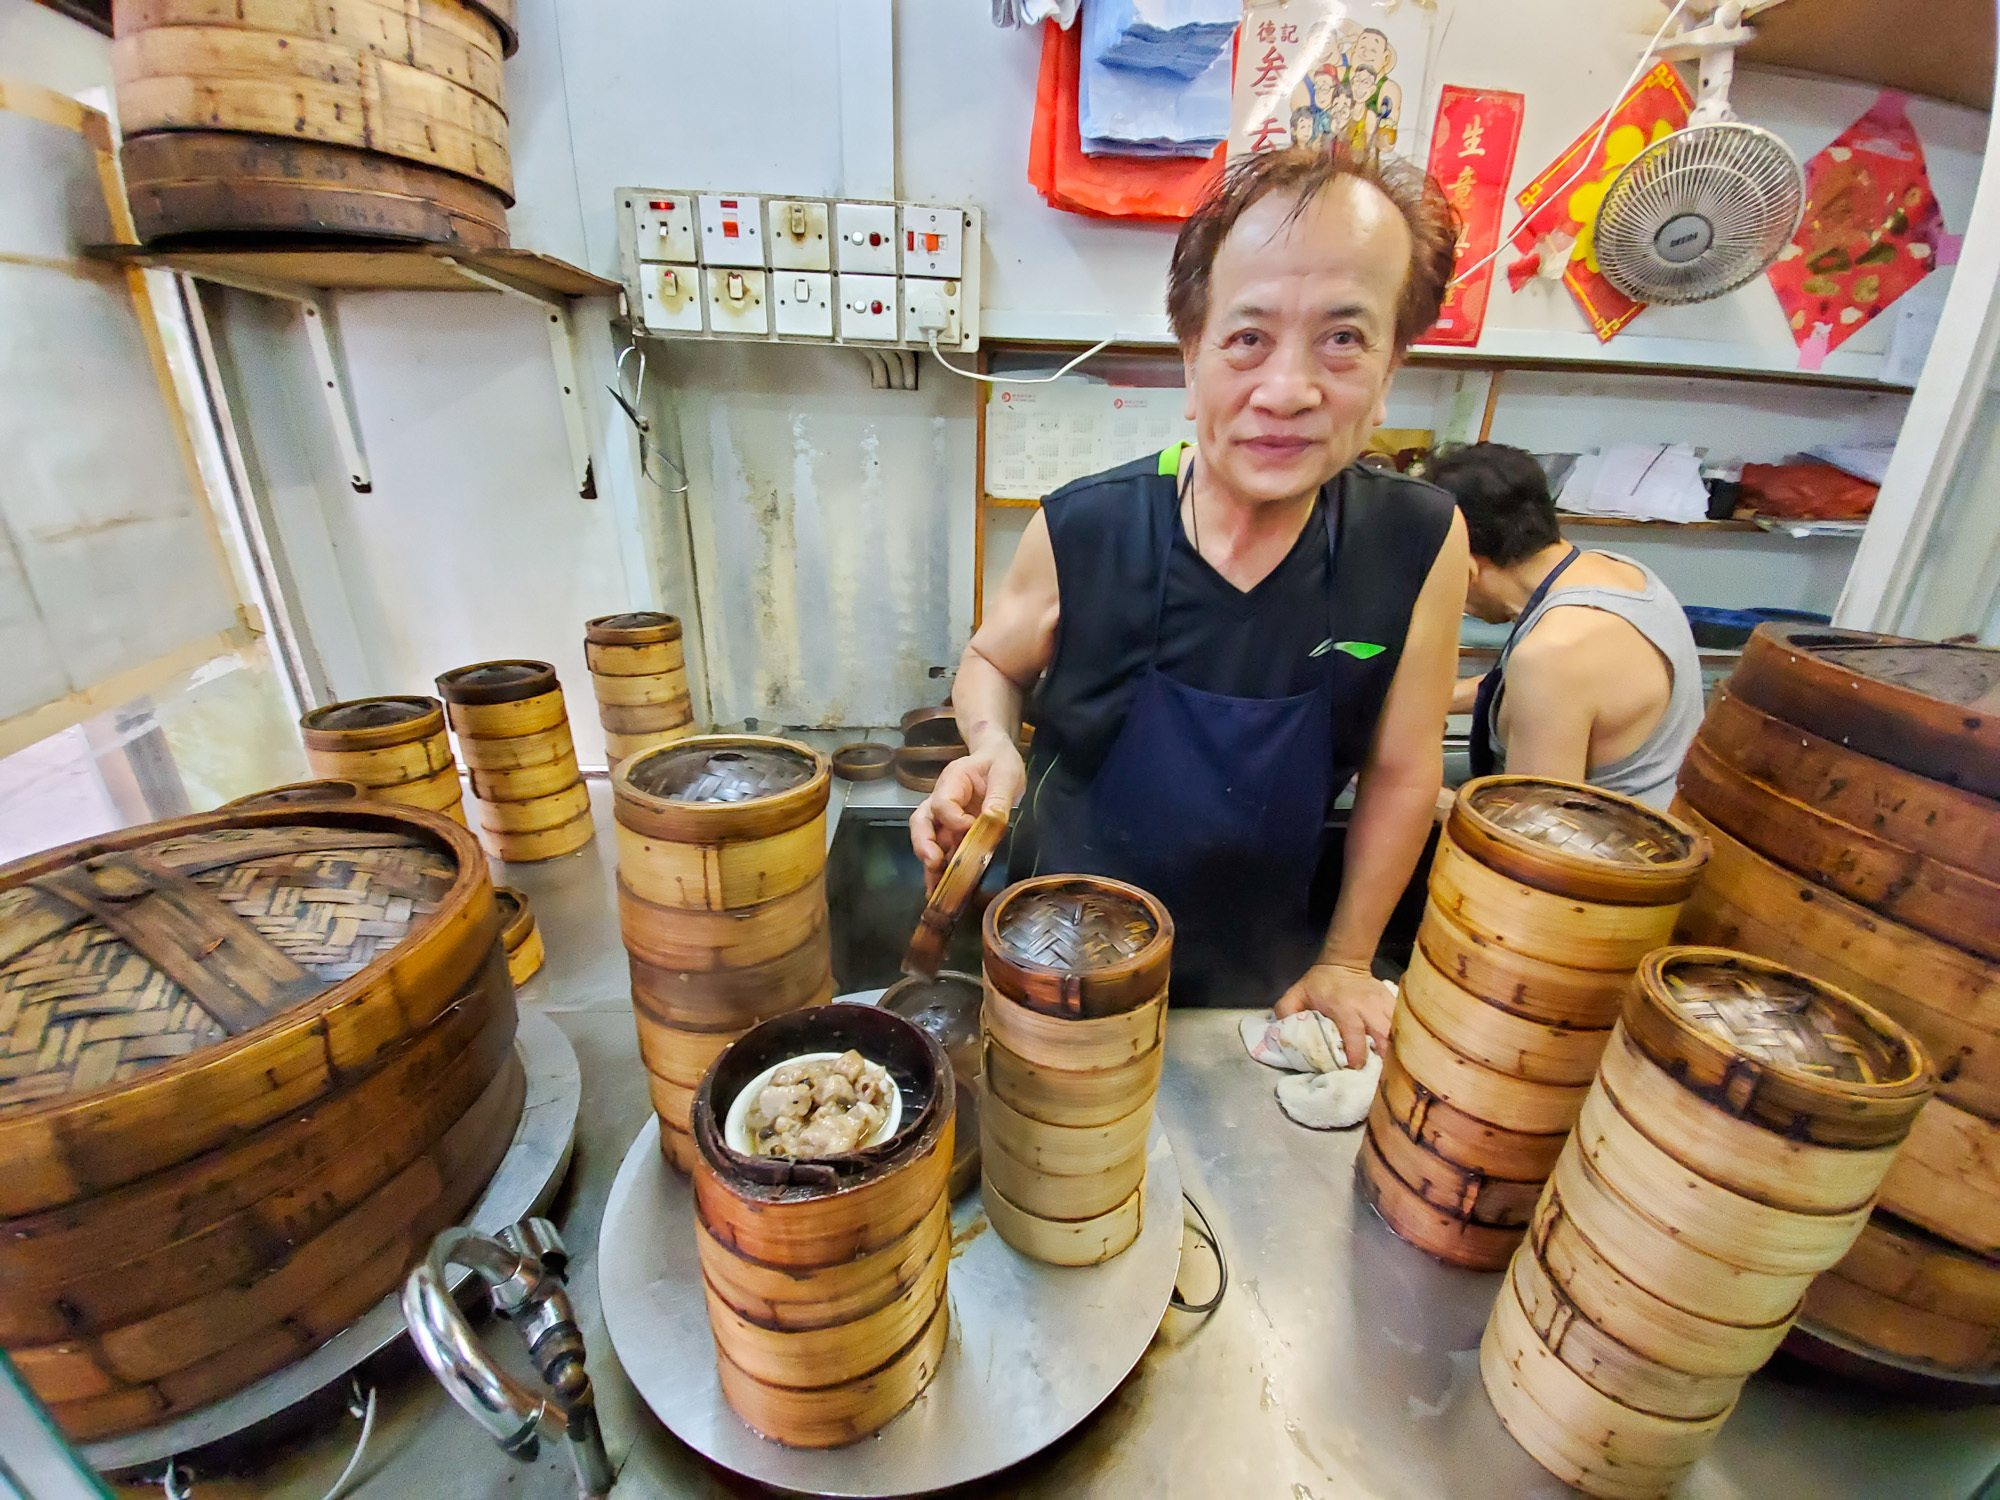 A true hole in the wall atmosphere, opened since 1978, saam hui yaat offers some of the cheapest and best dim sum in hong kong